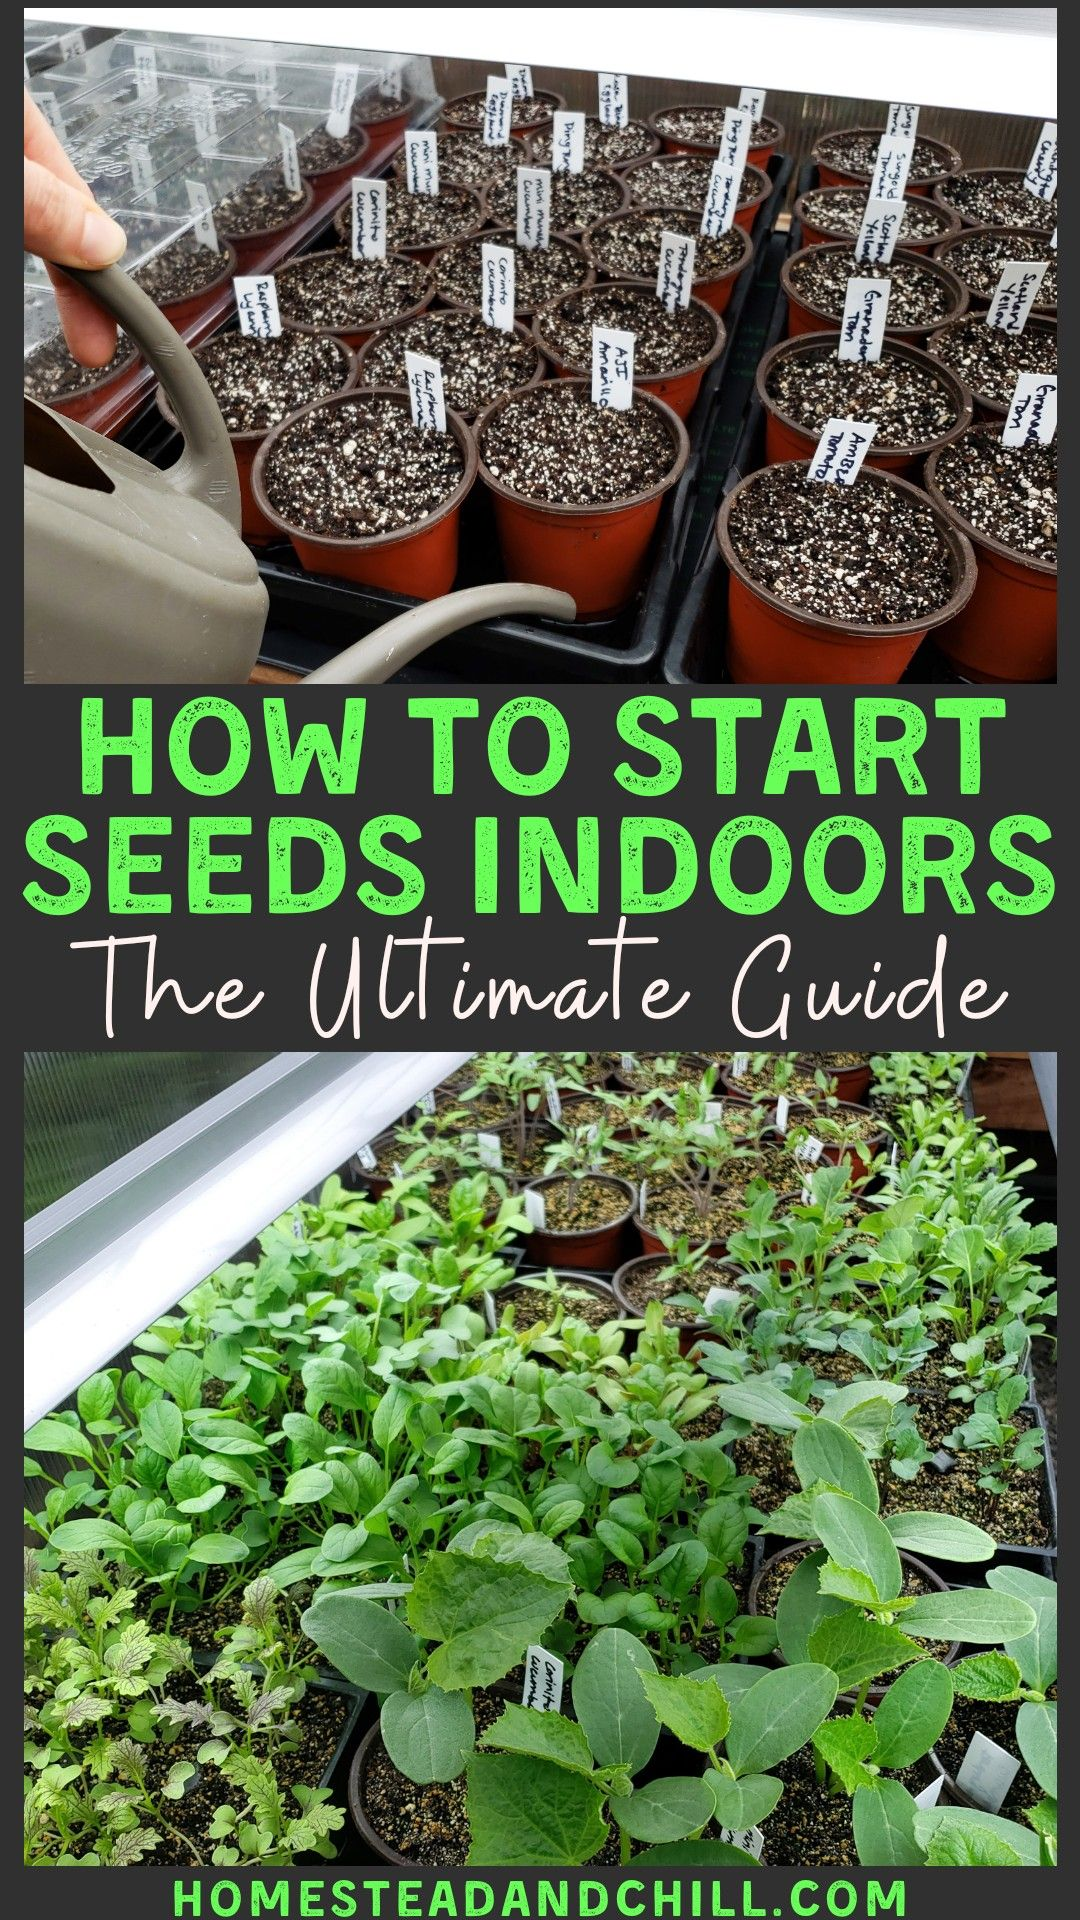 Seed Starting 101 How to Sow Seeds Indoors is part of Garden seeds, Organic gardening tips, Garden care, Organic horticulture, Gardening tips, Seed starting - Everything you need to know for starting seeds indoors  supplies, timing, and stepbystep instructions  from sowing seeds to caring for young seedlings!